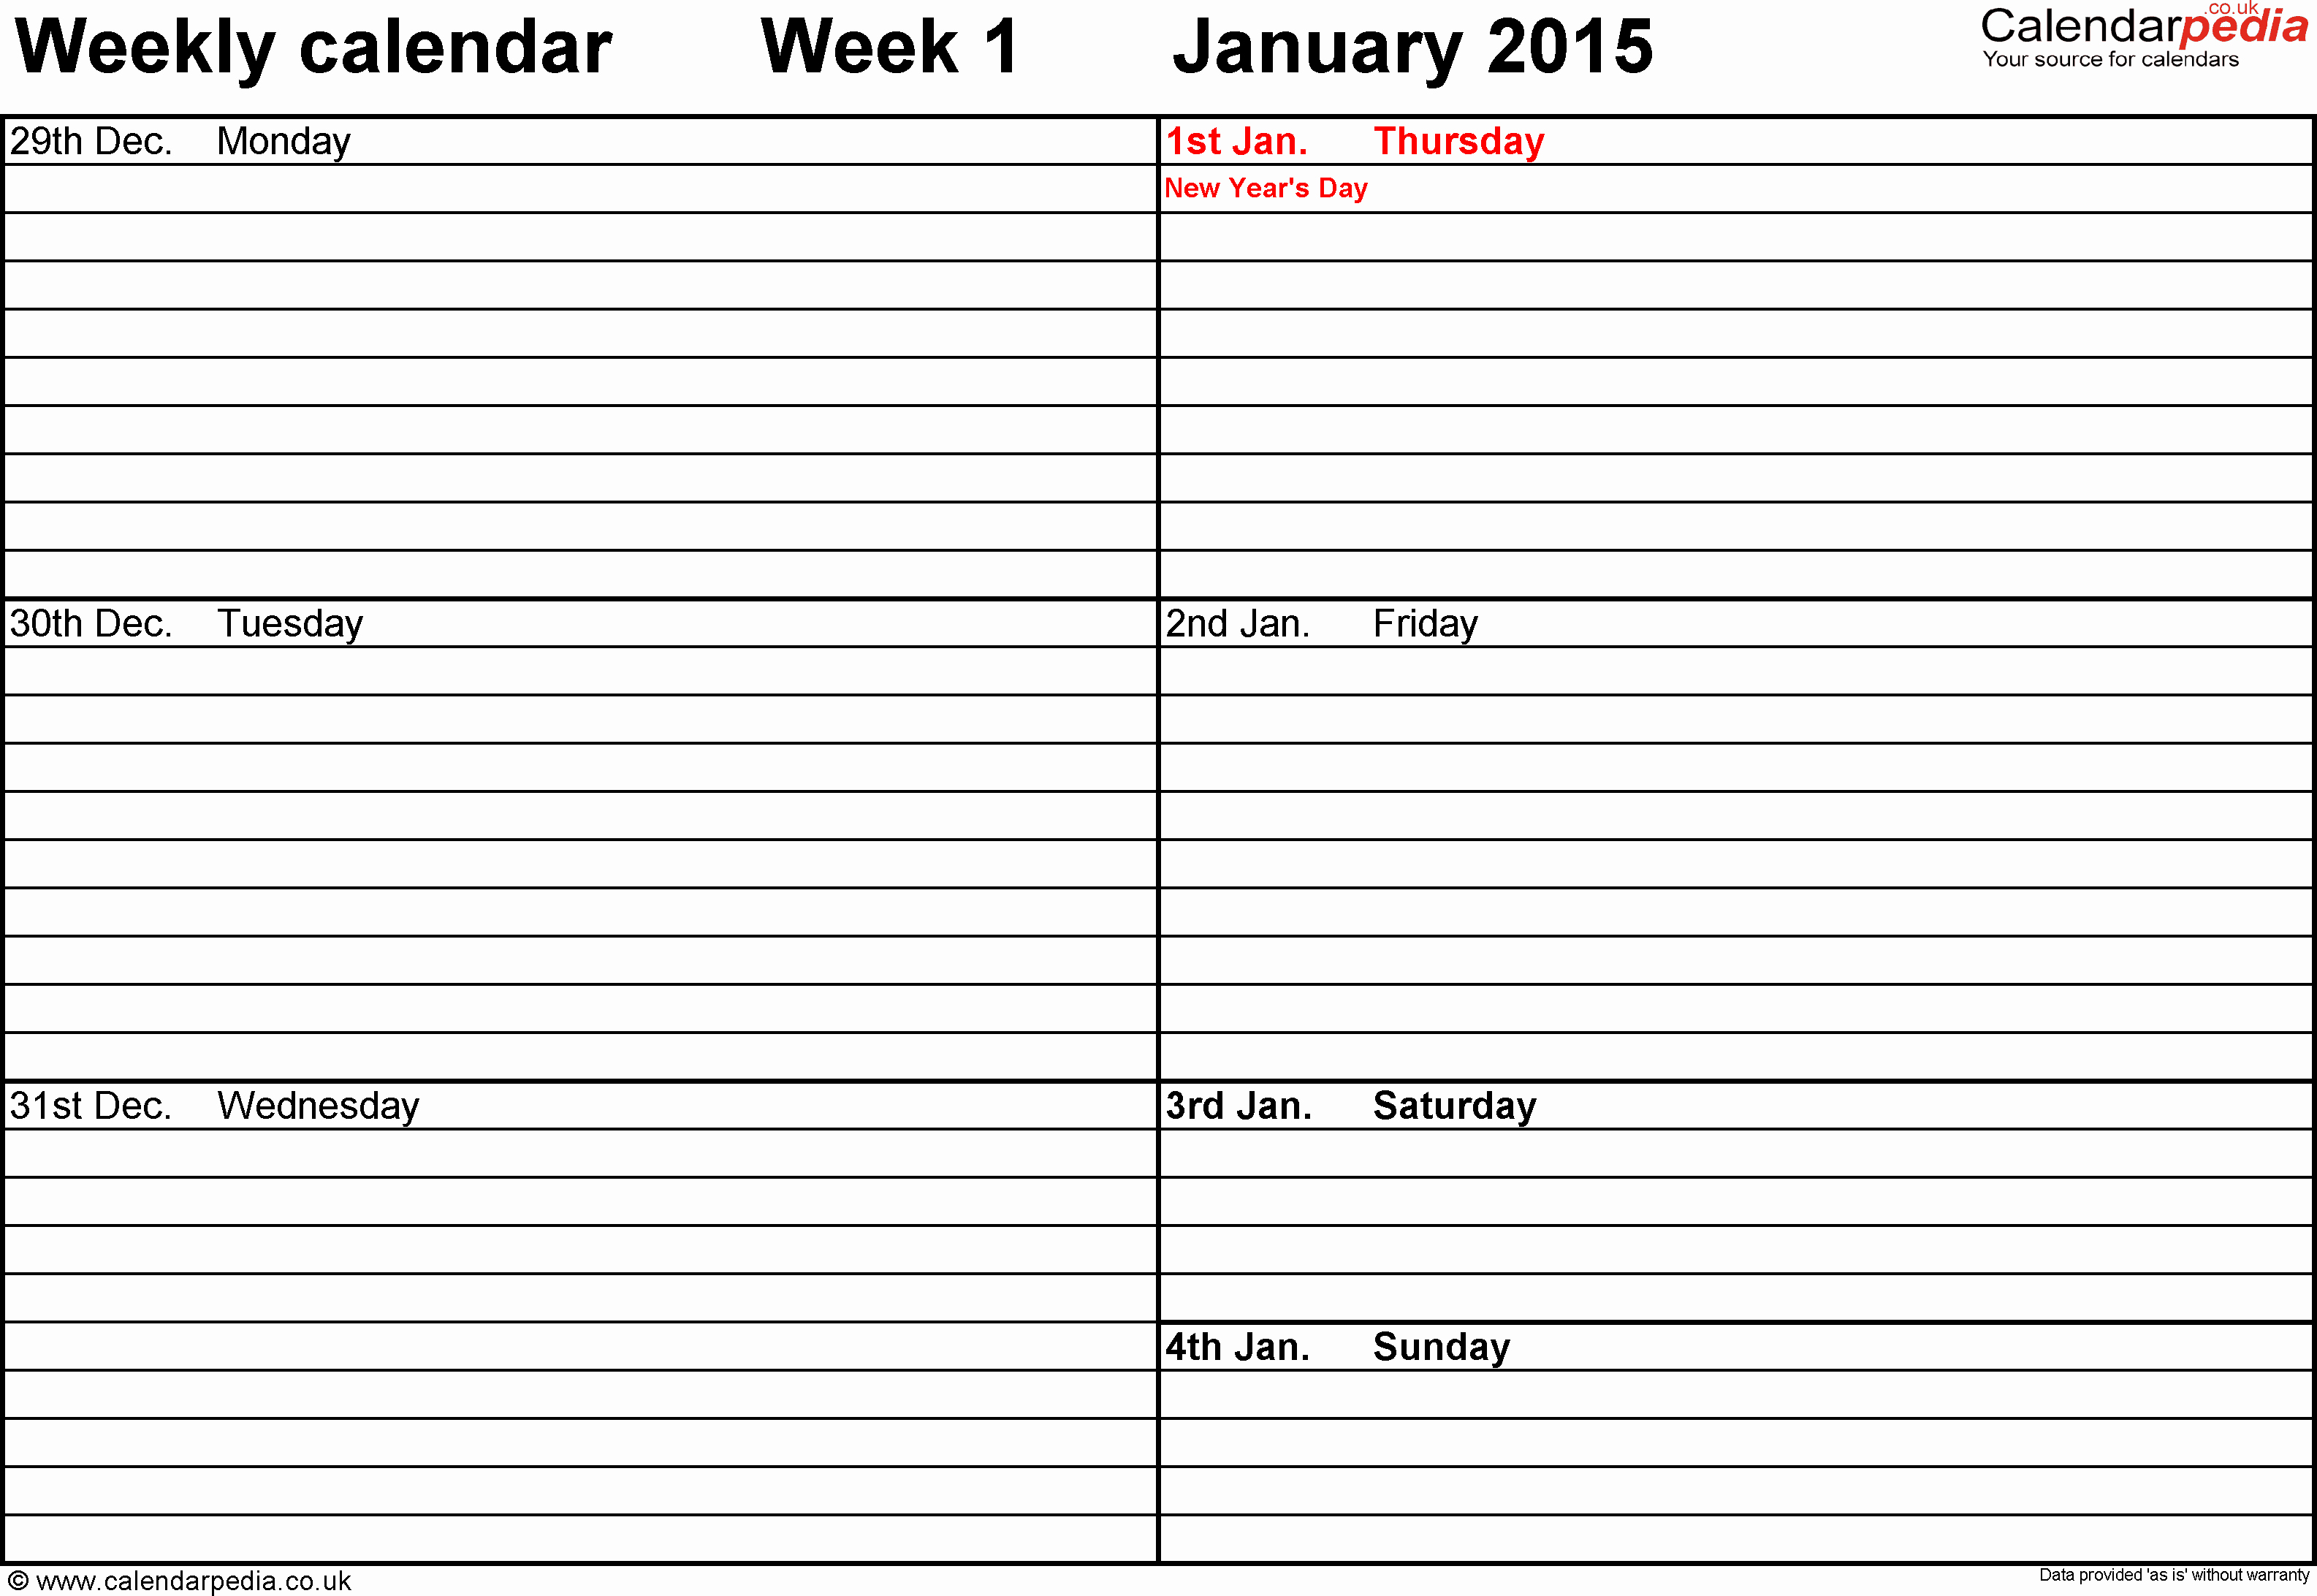 5 Day Calendar Template Word Luxury Weekly Calendar Pdf